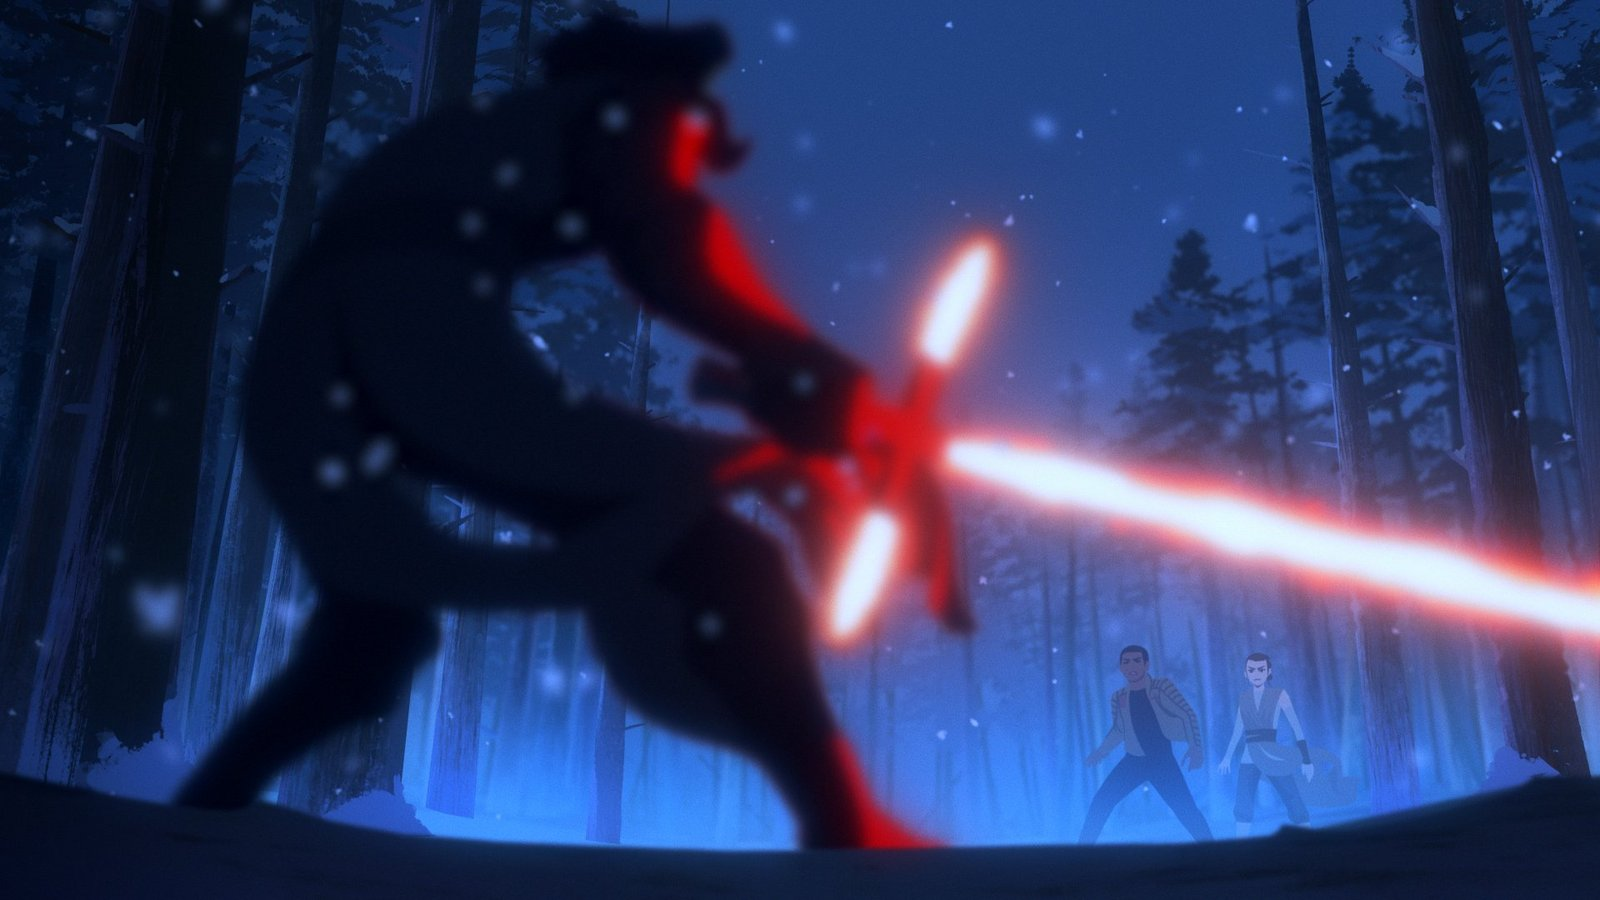 Rey and Finn vs. Kylo Ren